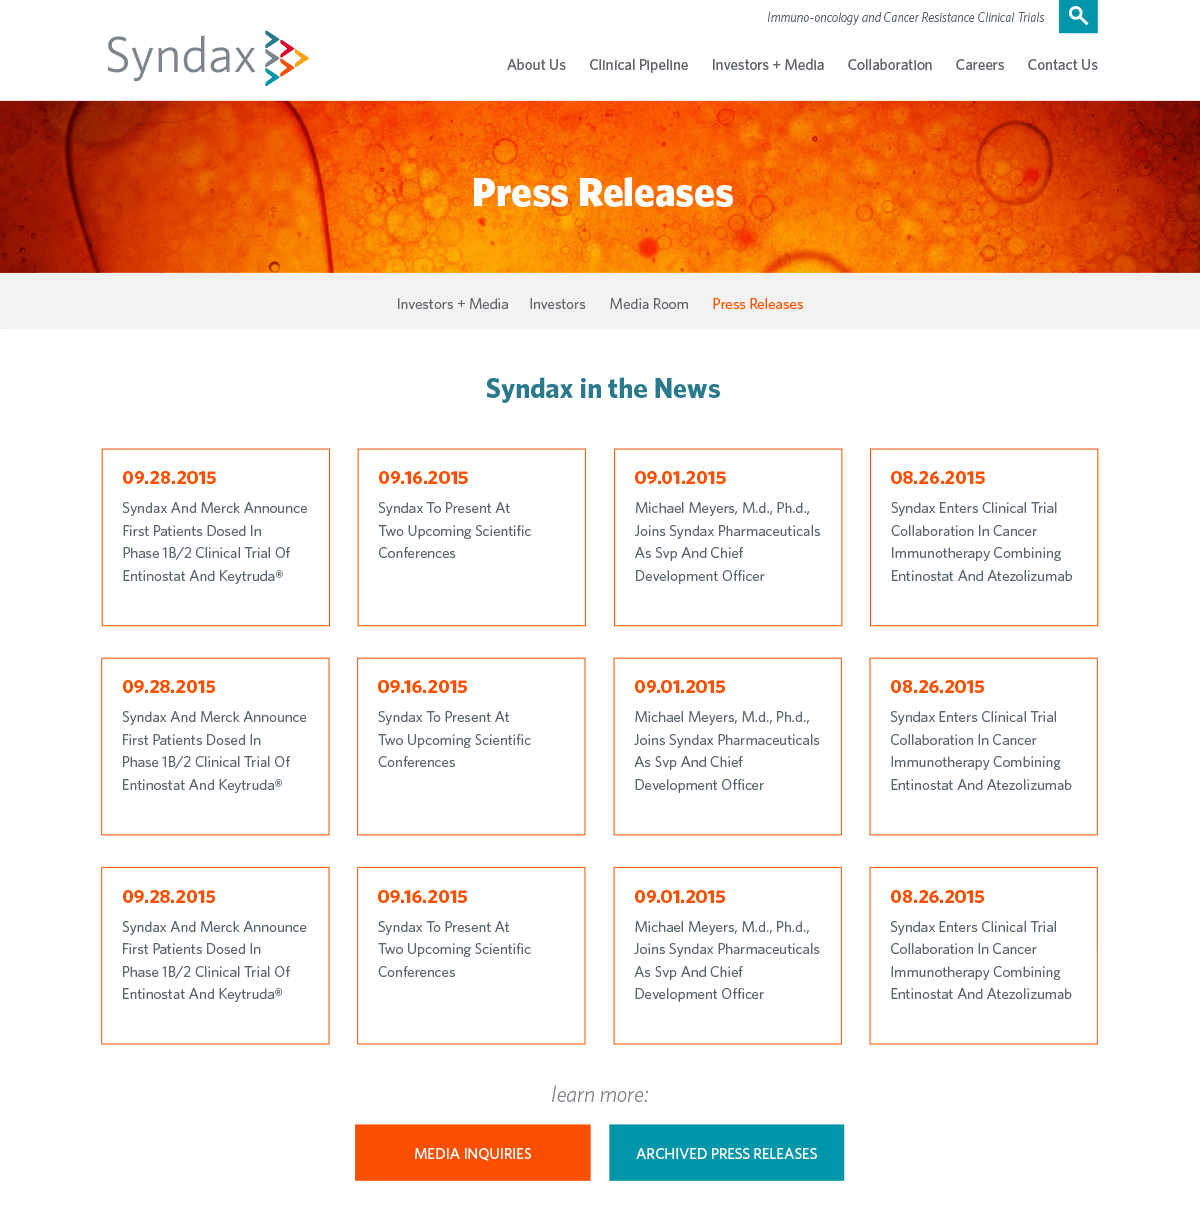 Syndax - Press Releases